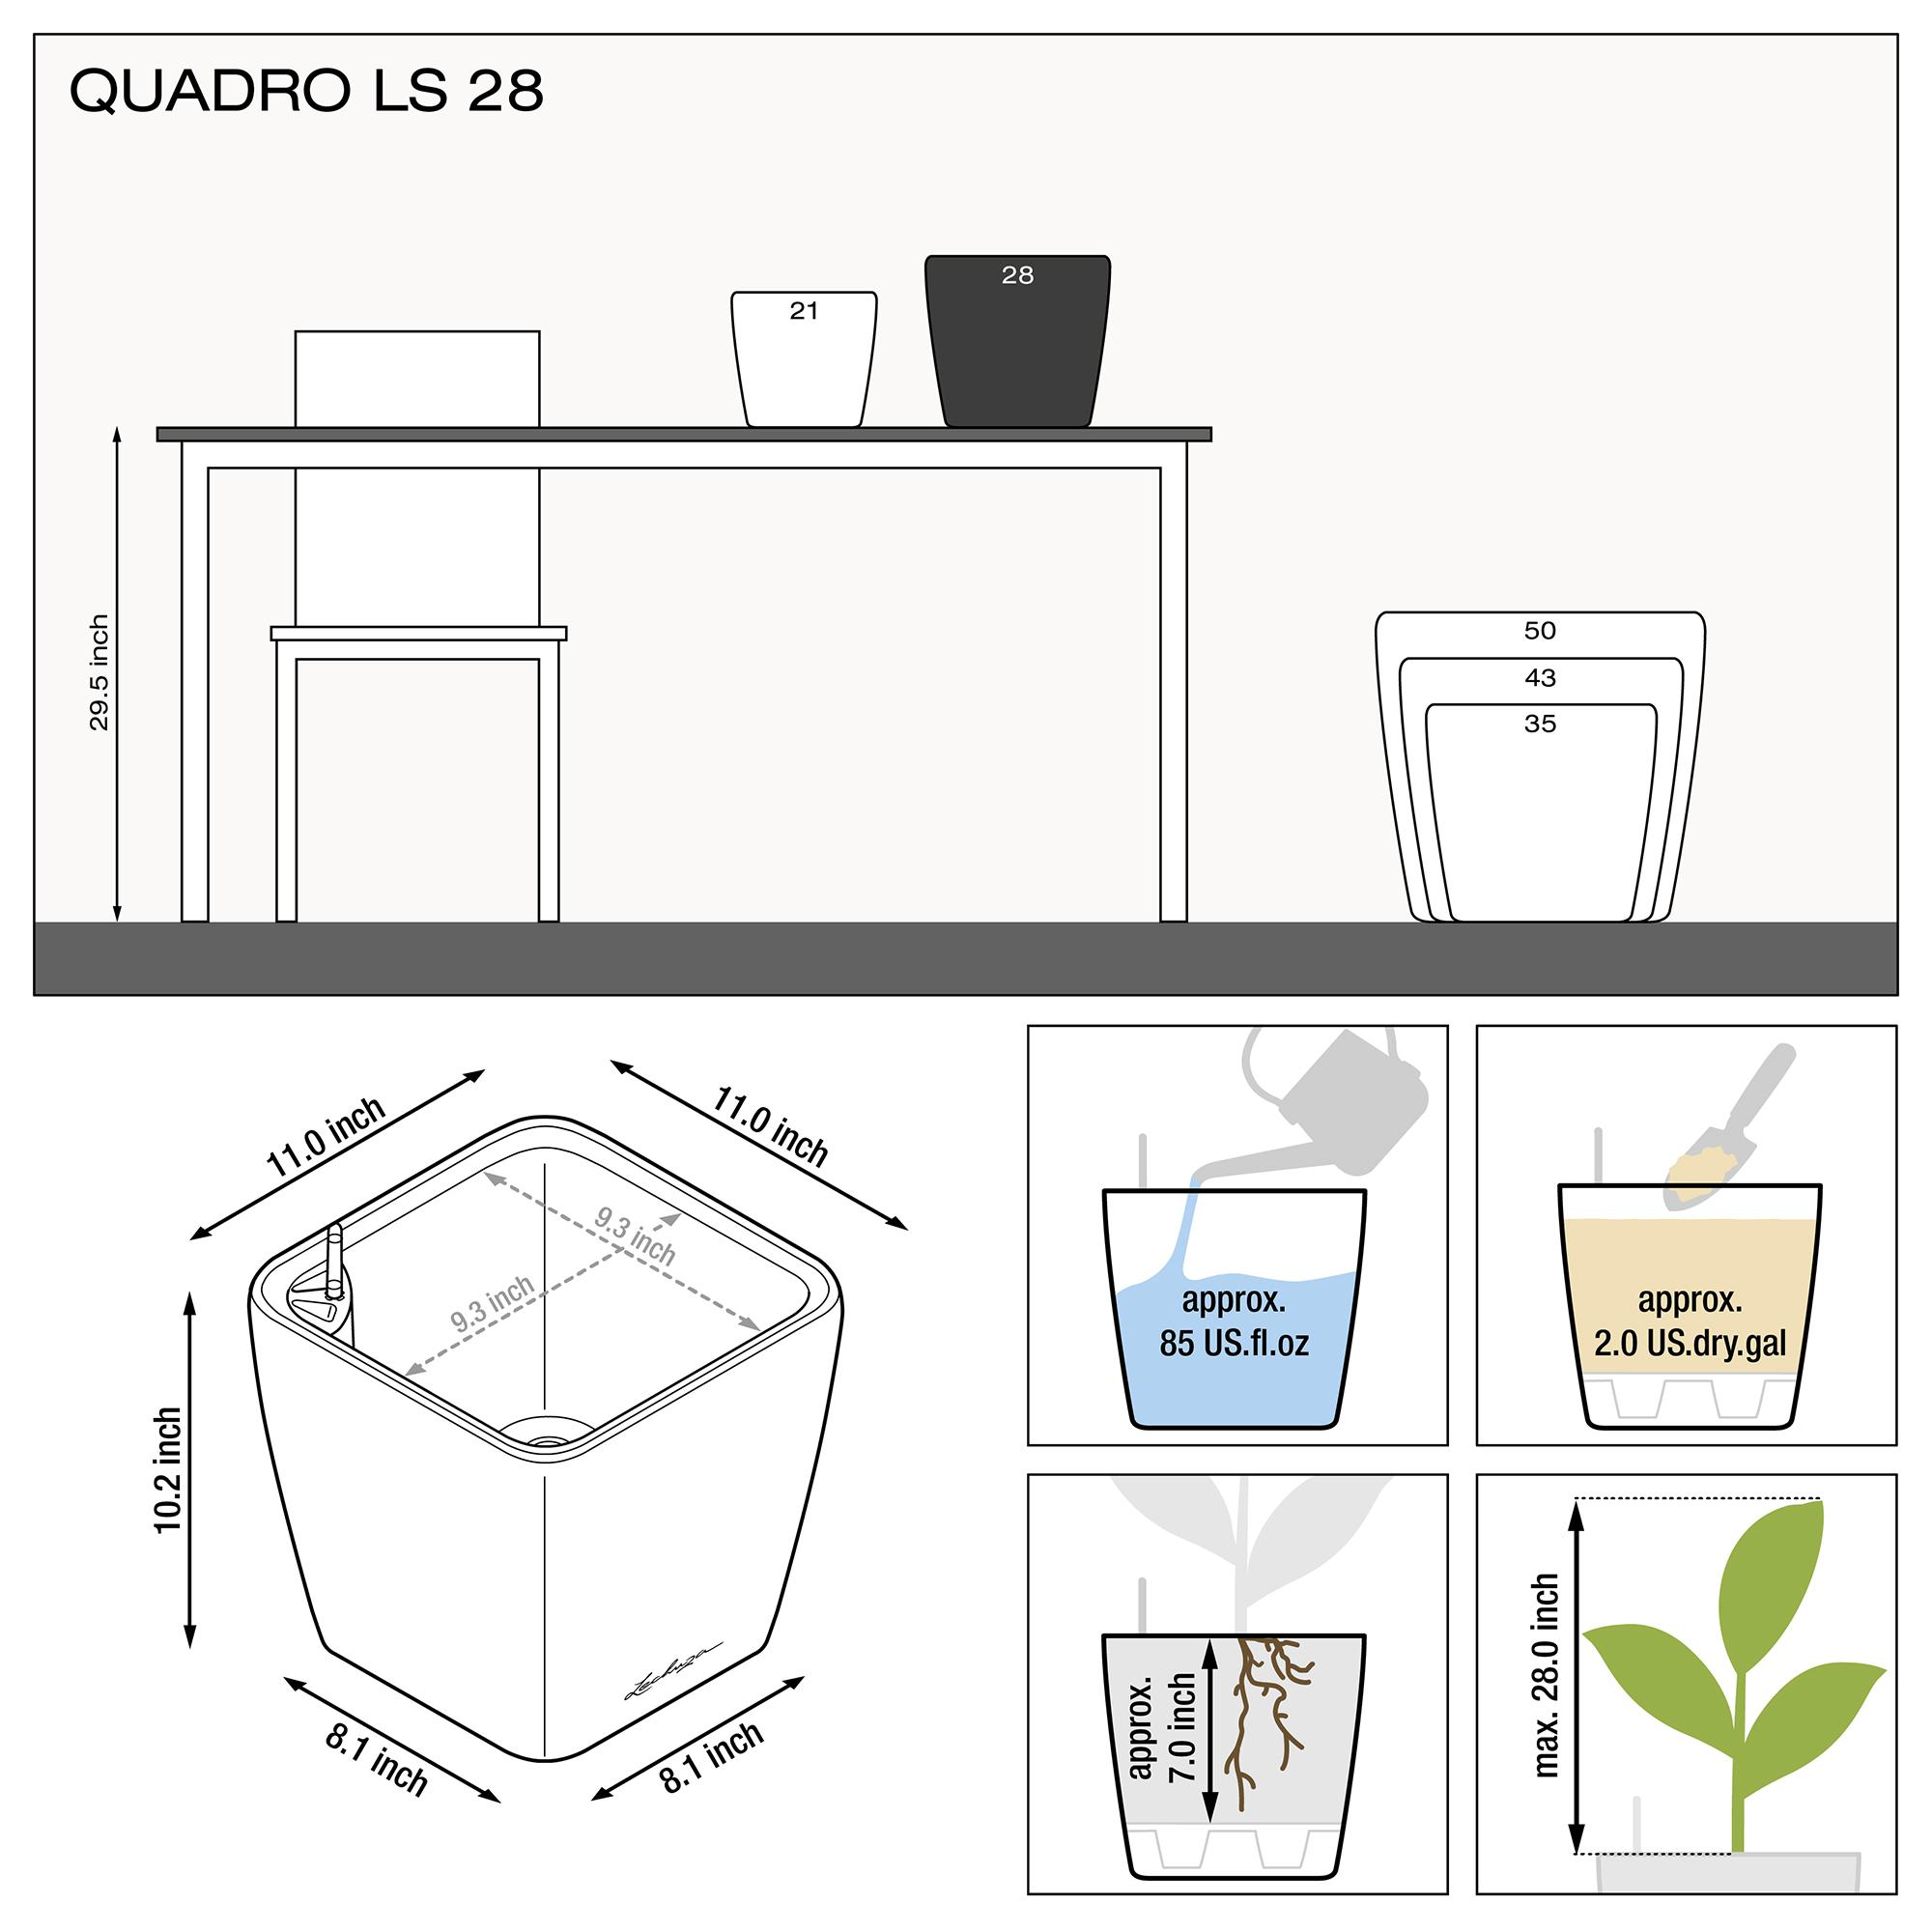 le_quadro-ls28_product_addi_nz_us